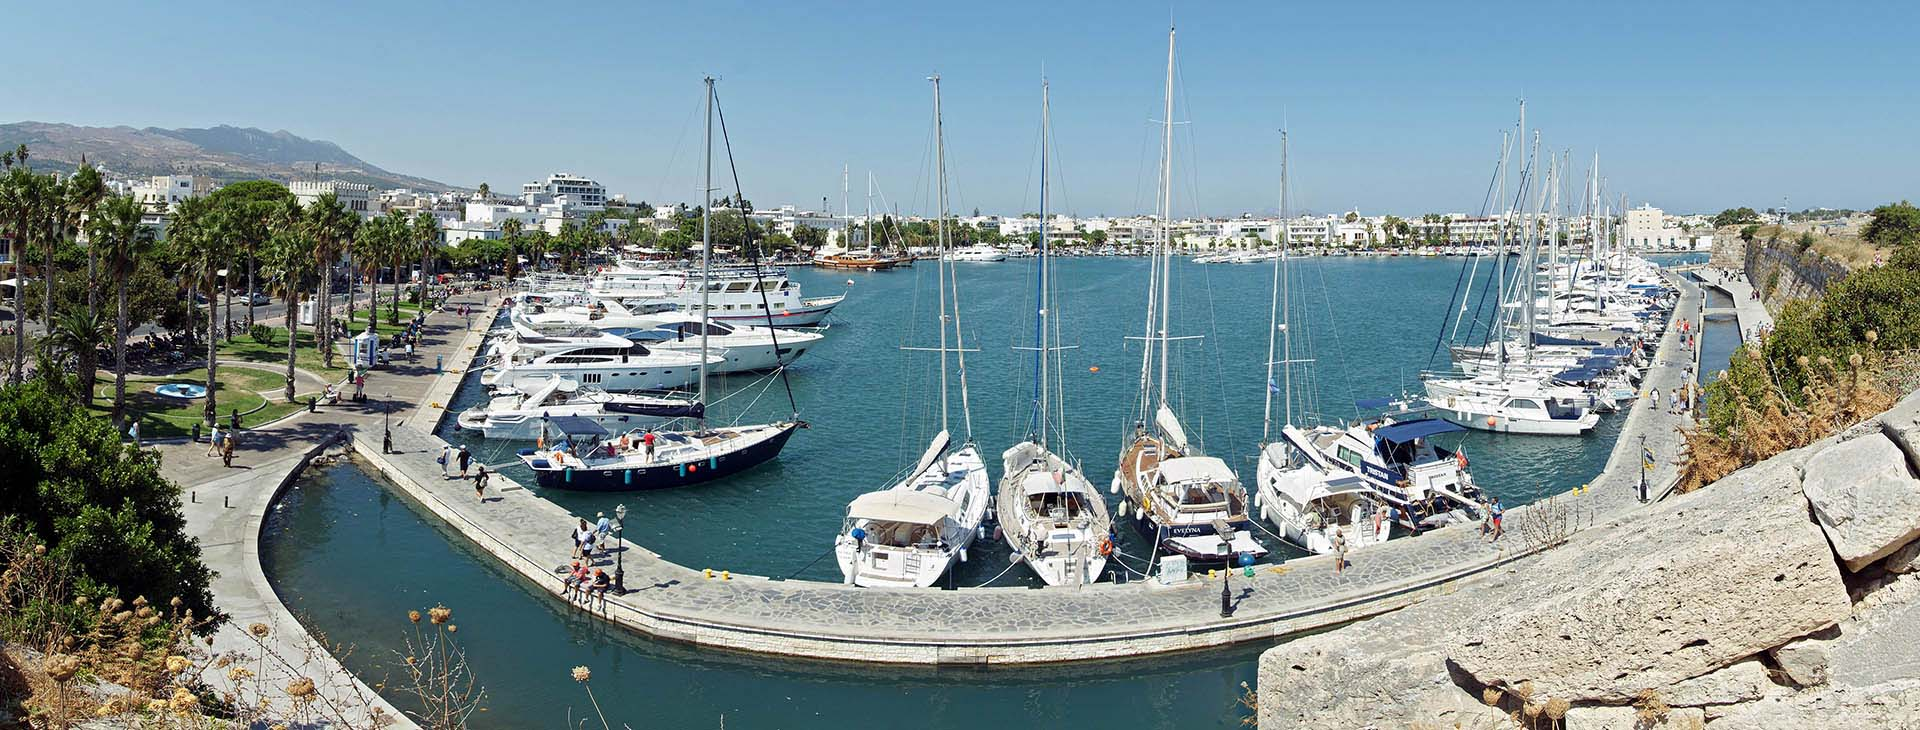 The harbour of Kos island